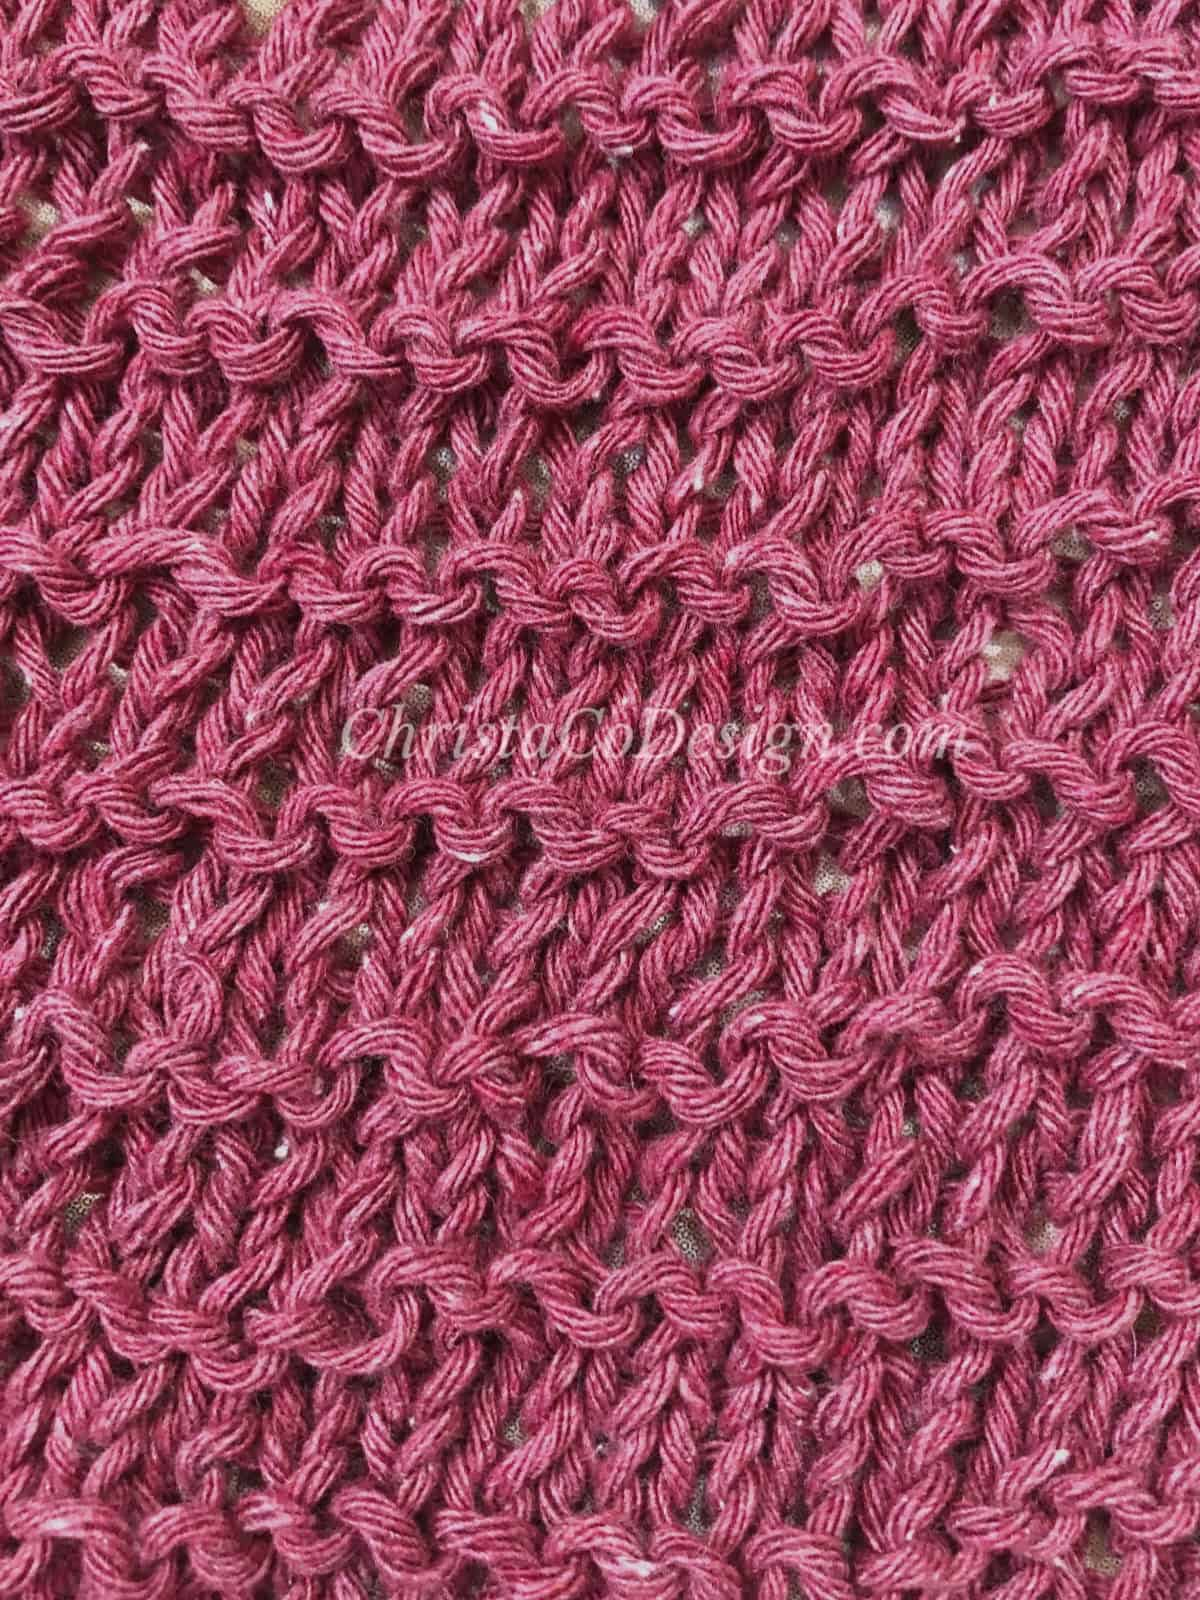 picture of knit stitches close up in maroon